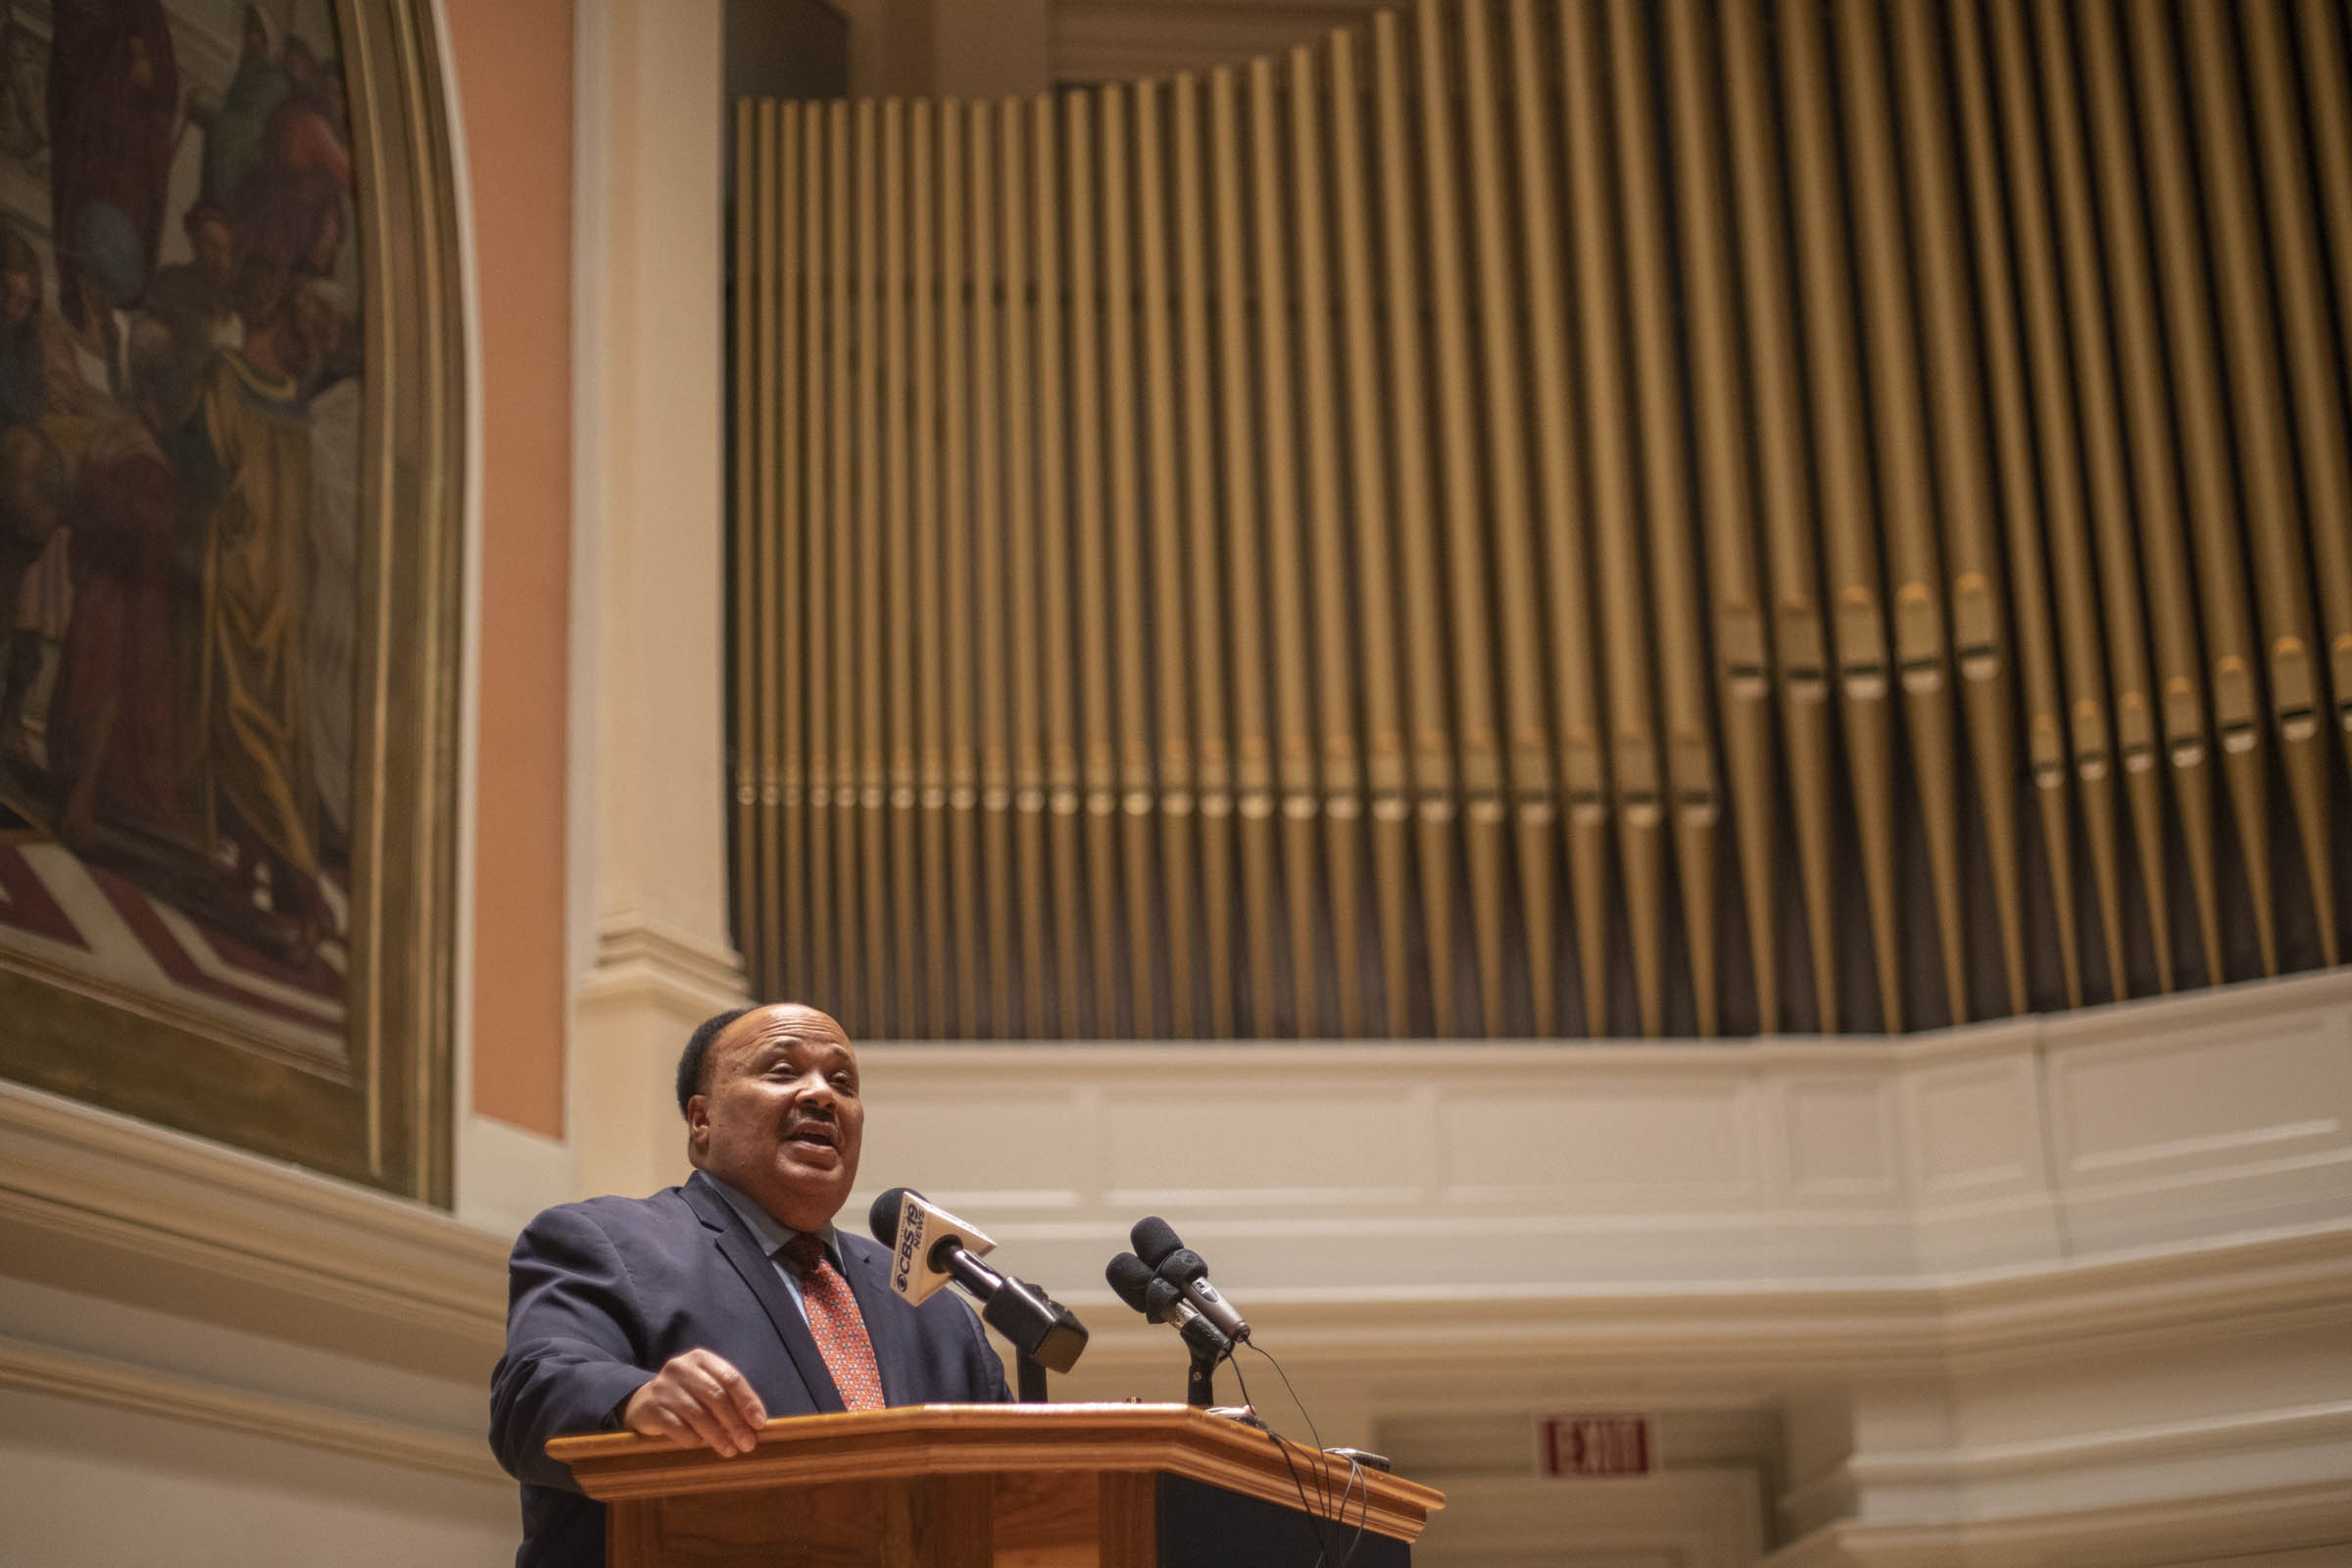 Martin Luther King Iii Retraces His Father S Footsteps At Old Cabell Hall Uva Today